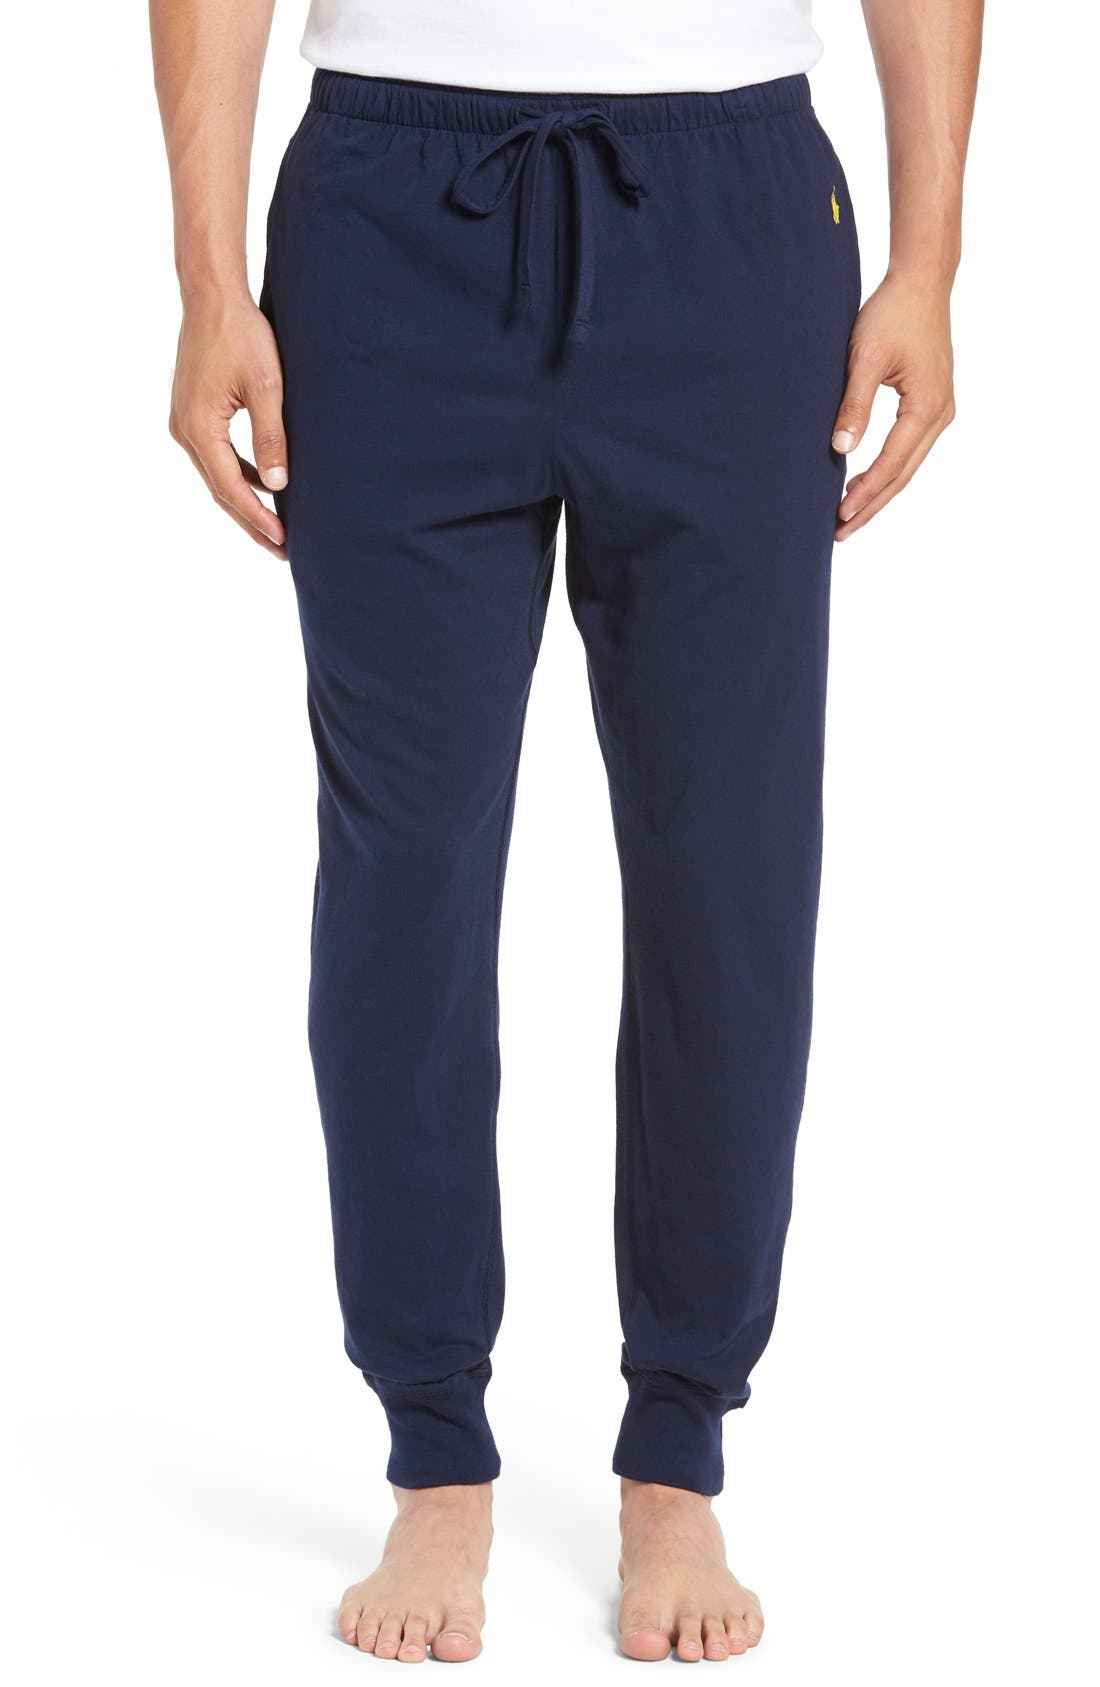 Alternate Image 1 Selected - Polo Ralph Lauren Relaxed Fit Jogger Pants